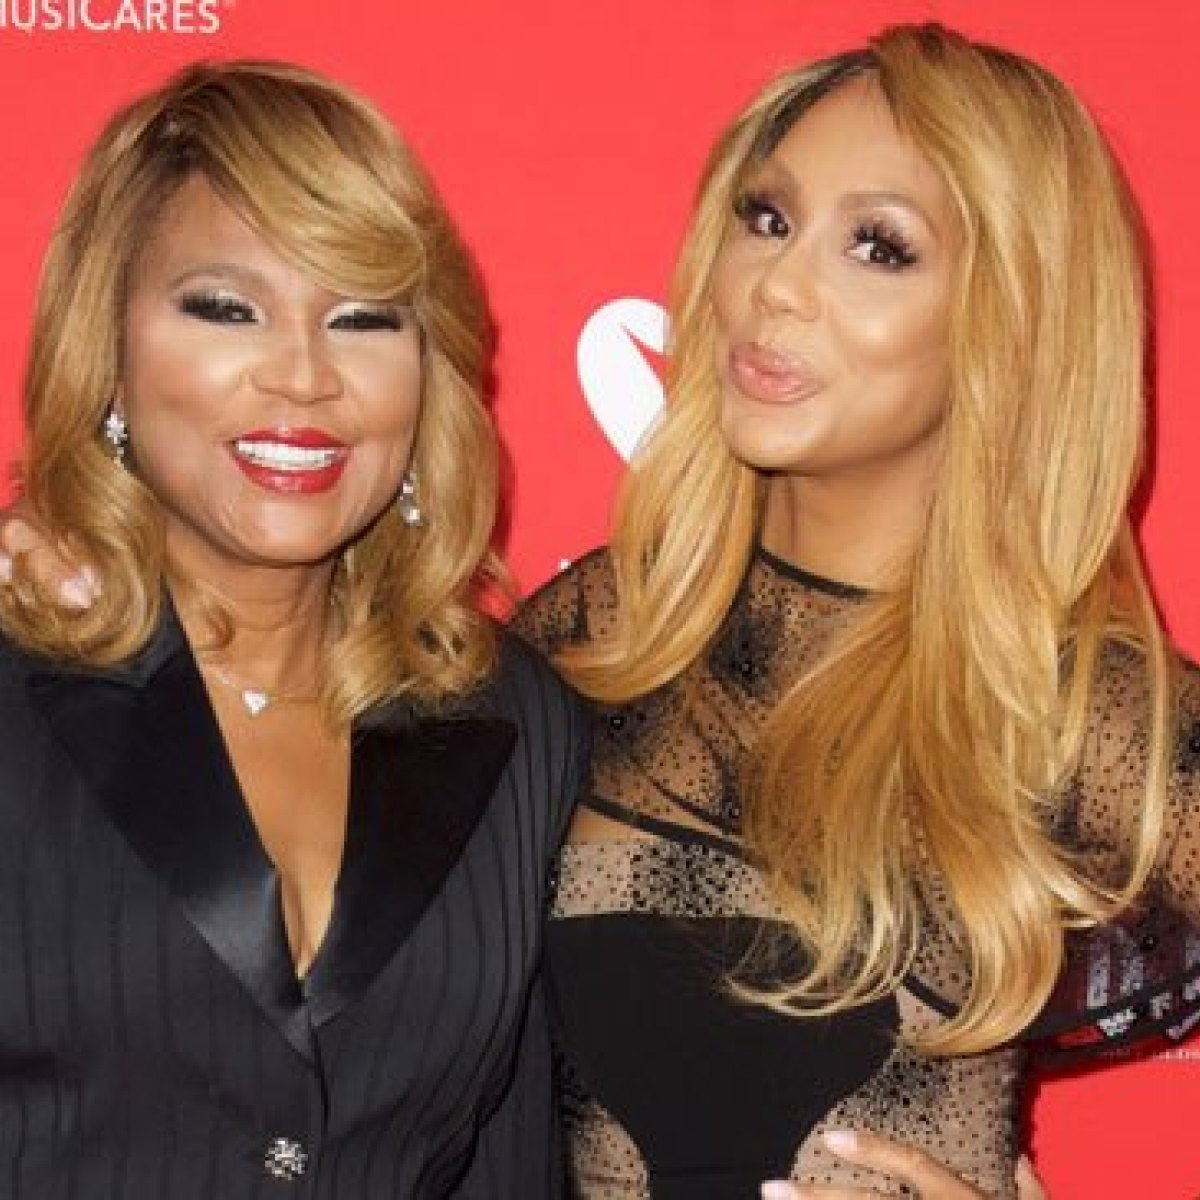 tamar-braxton-gushes-over-her-mom-evelyn-braxton-for-mothers-day-see-her-message-here